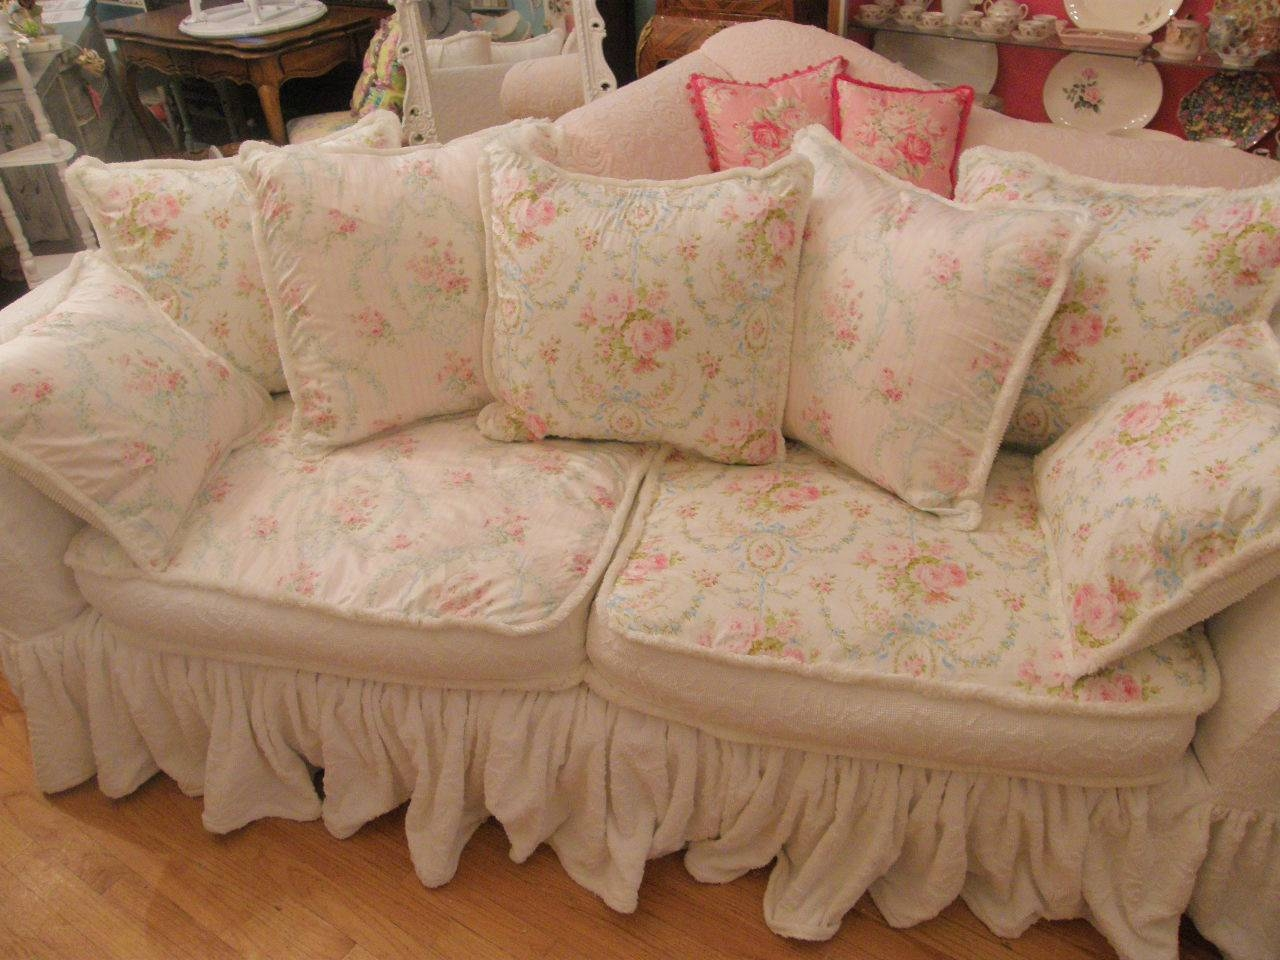 Shabby Chic Sofa Slipcovers 47 With Shabby Chic Sofa Slipcovers pertaining to Shabby Chic Sofa Slipcovers (Image 10 of 15)